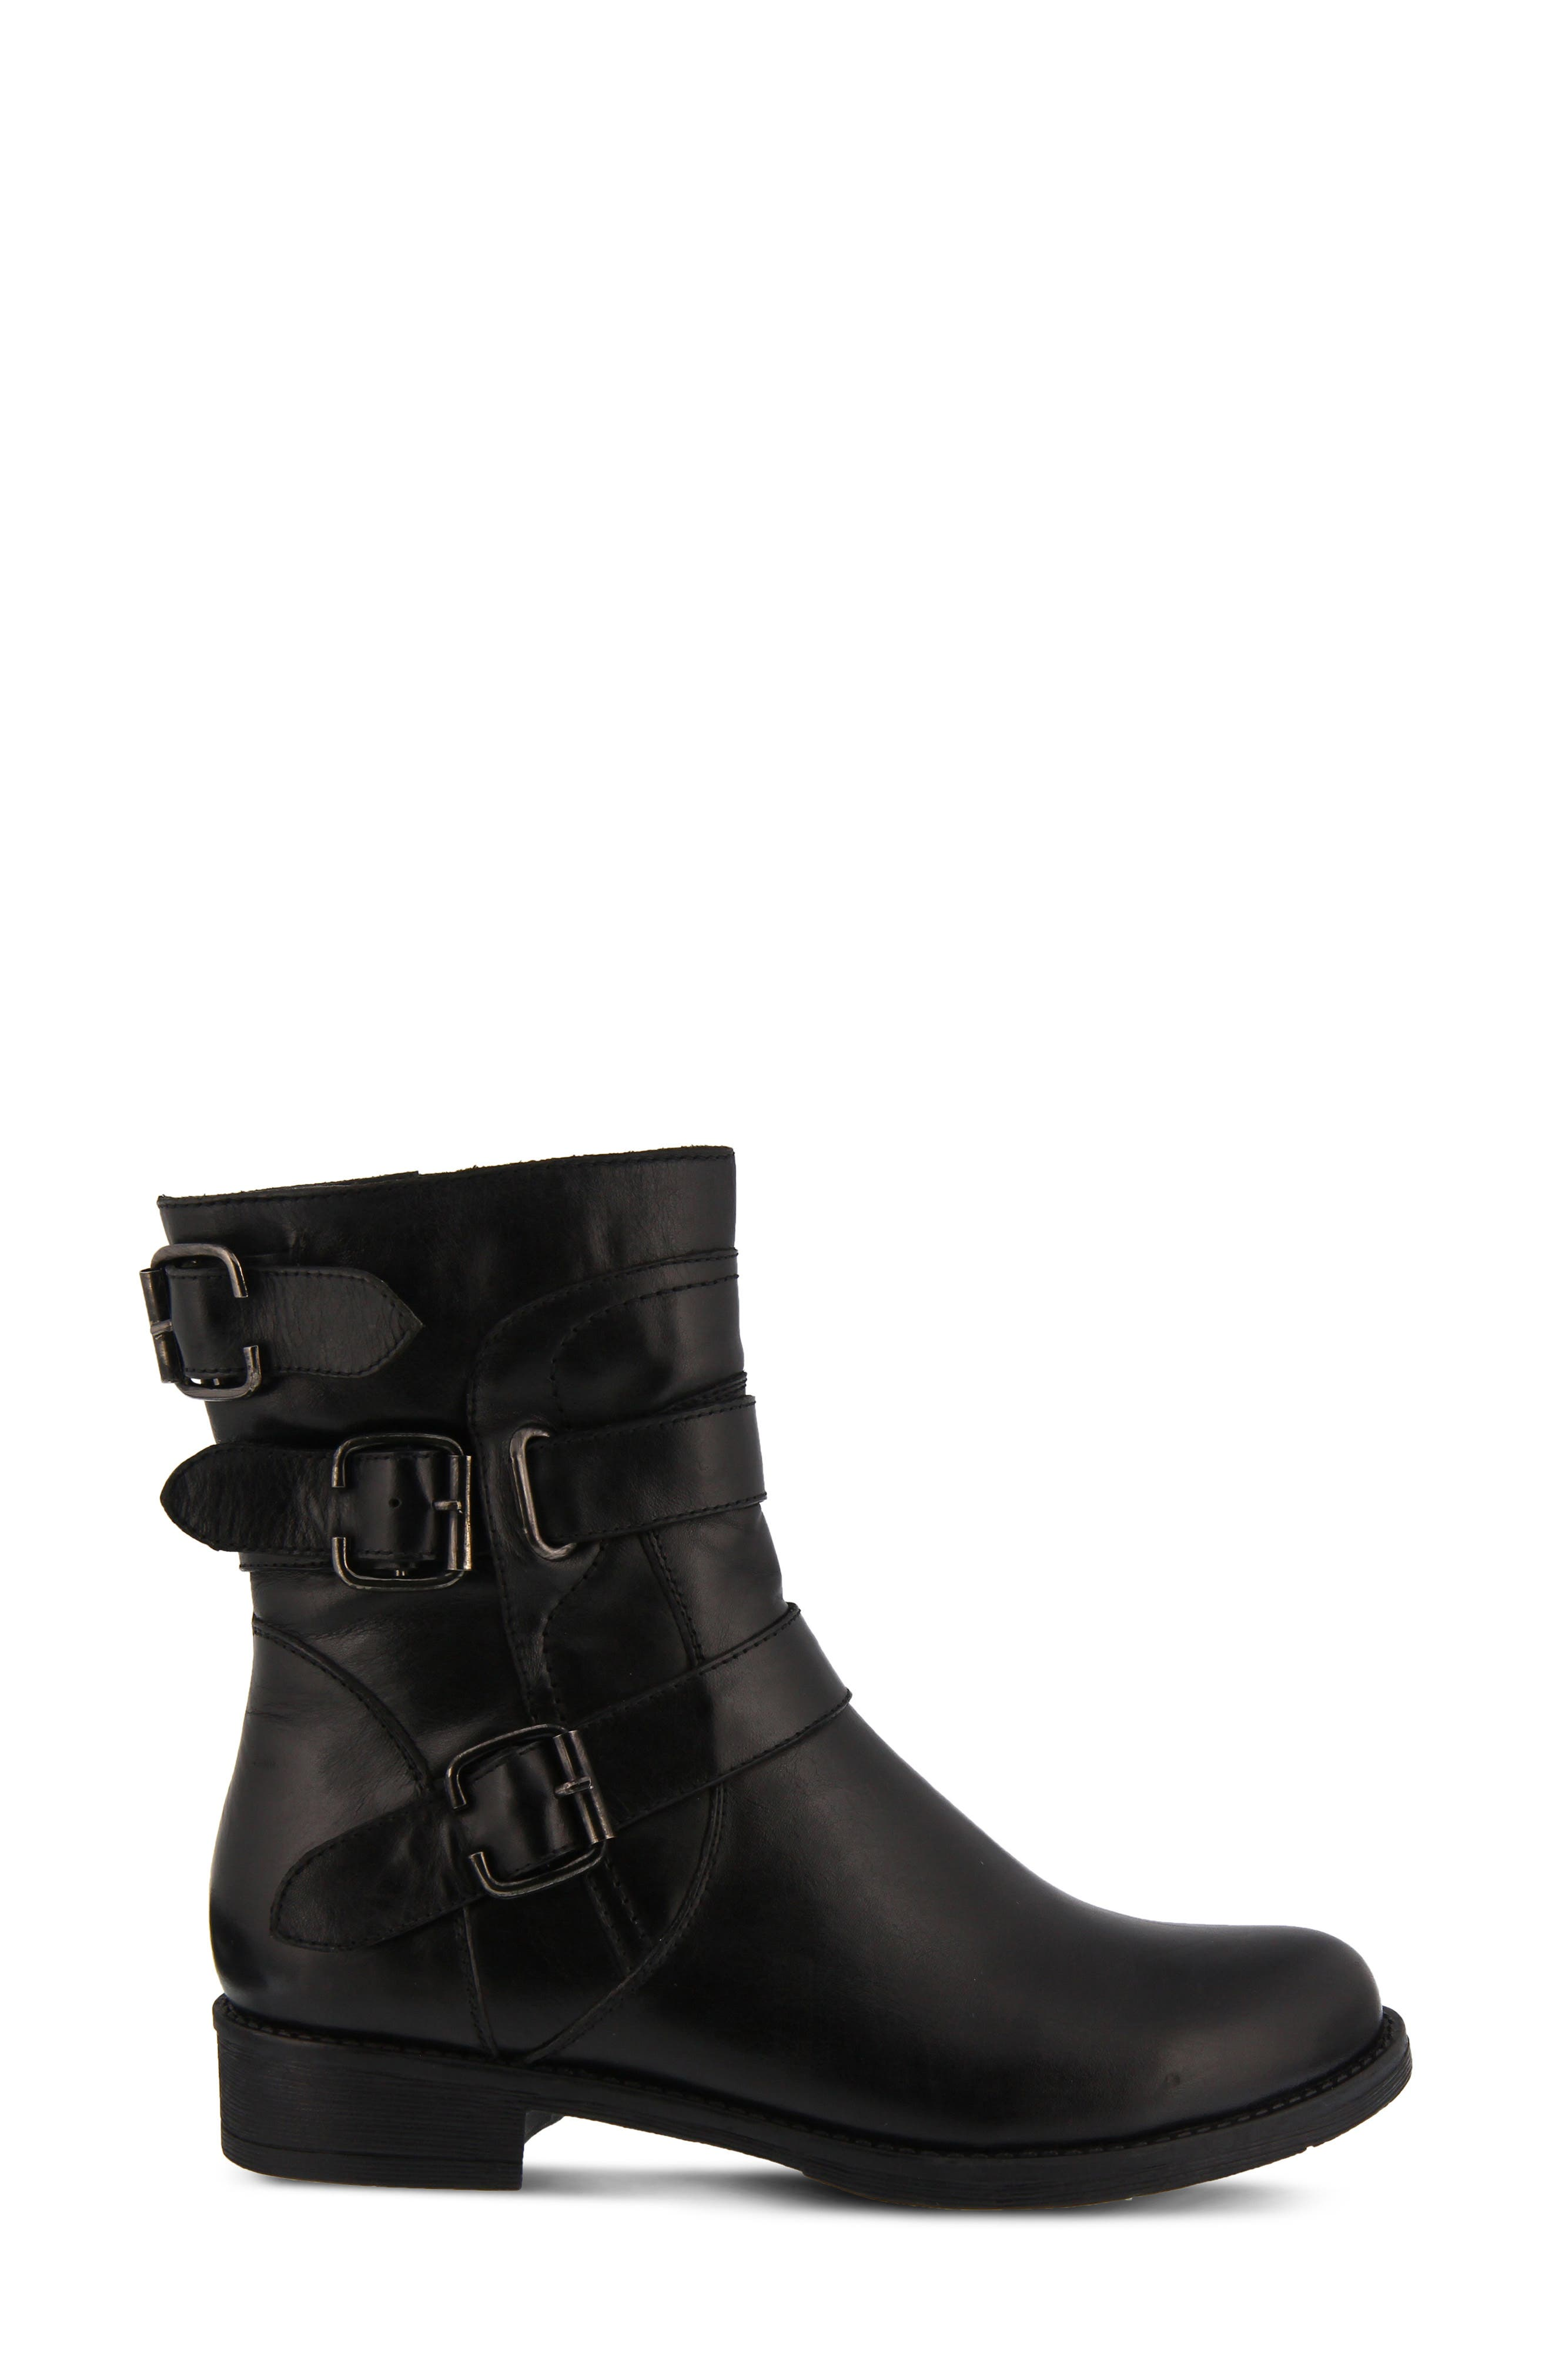 Diony Engineer Bootie,                             Alternate thumbnail 3, color,                             BLACK LEATHER